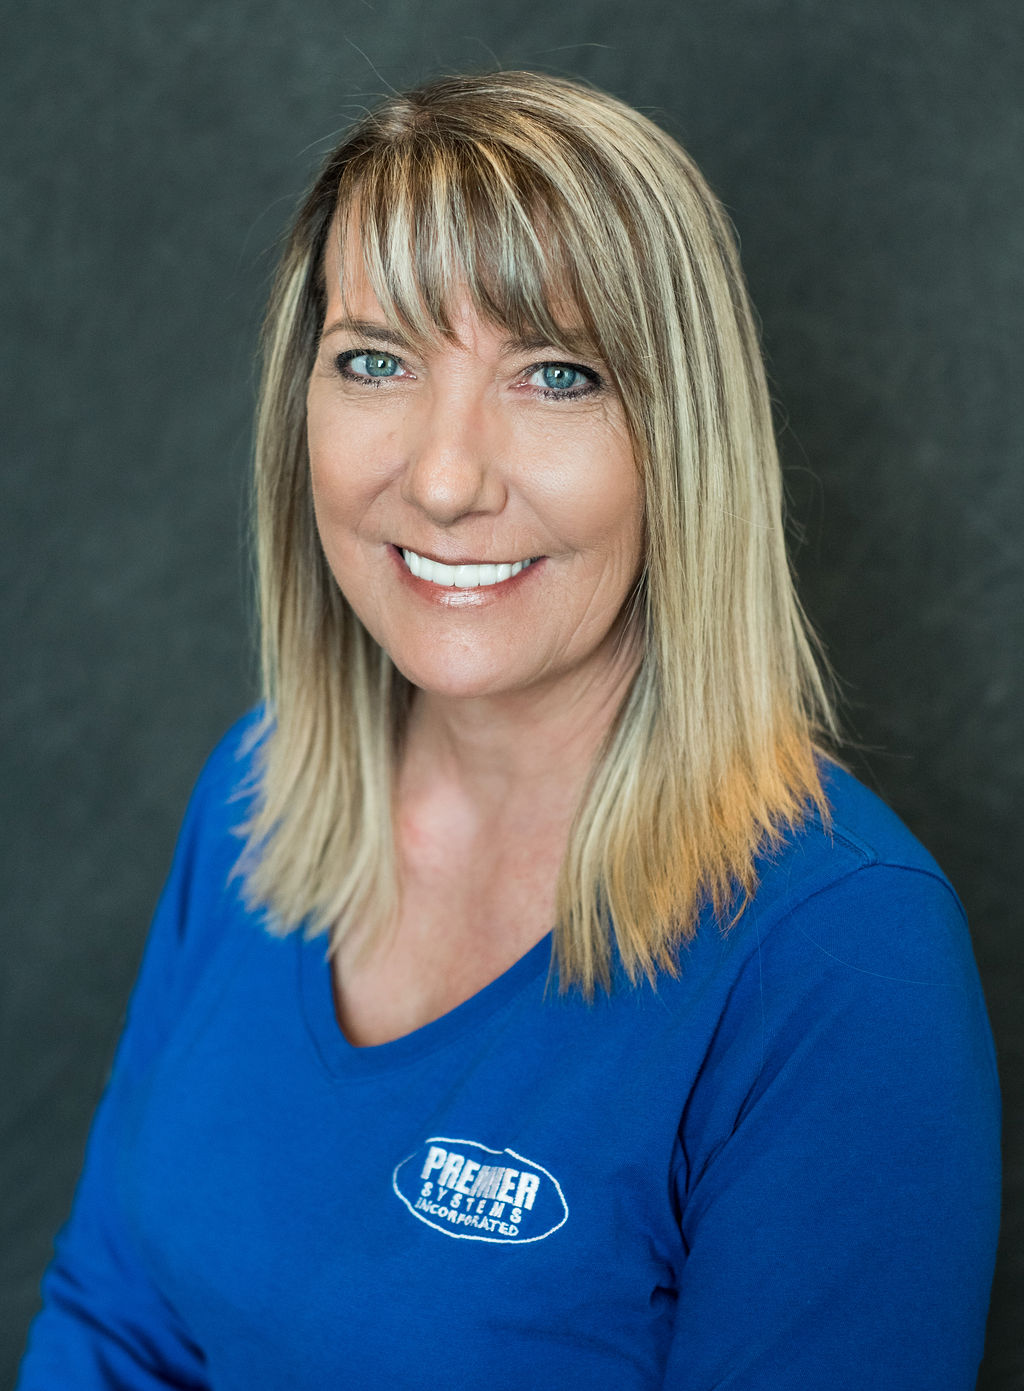 Lynn A. - Operations Manager